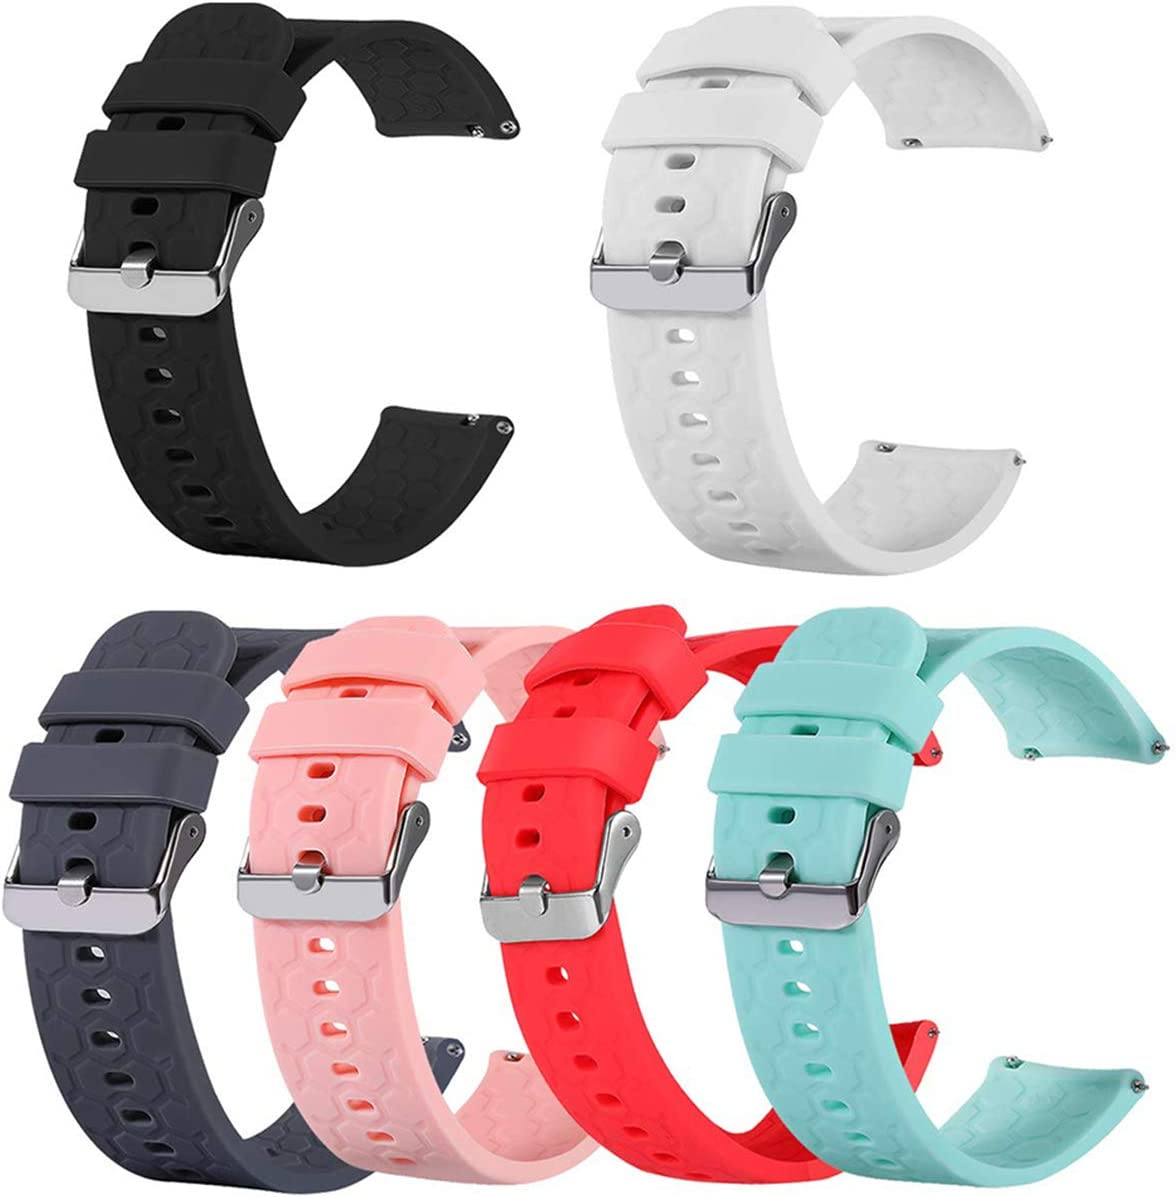 TenCloud 6-Pack Bands Compatible Opening large release sale with Amazfit Free shipping anywhere in the nation 20mm Band 2 Q GTS